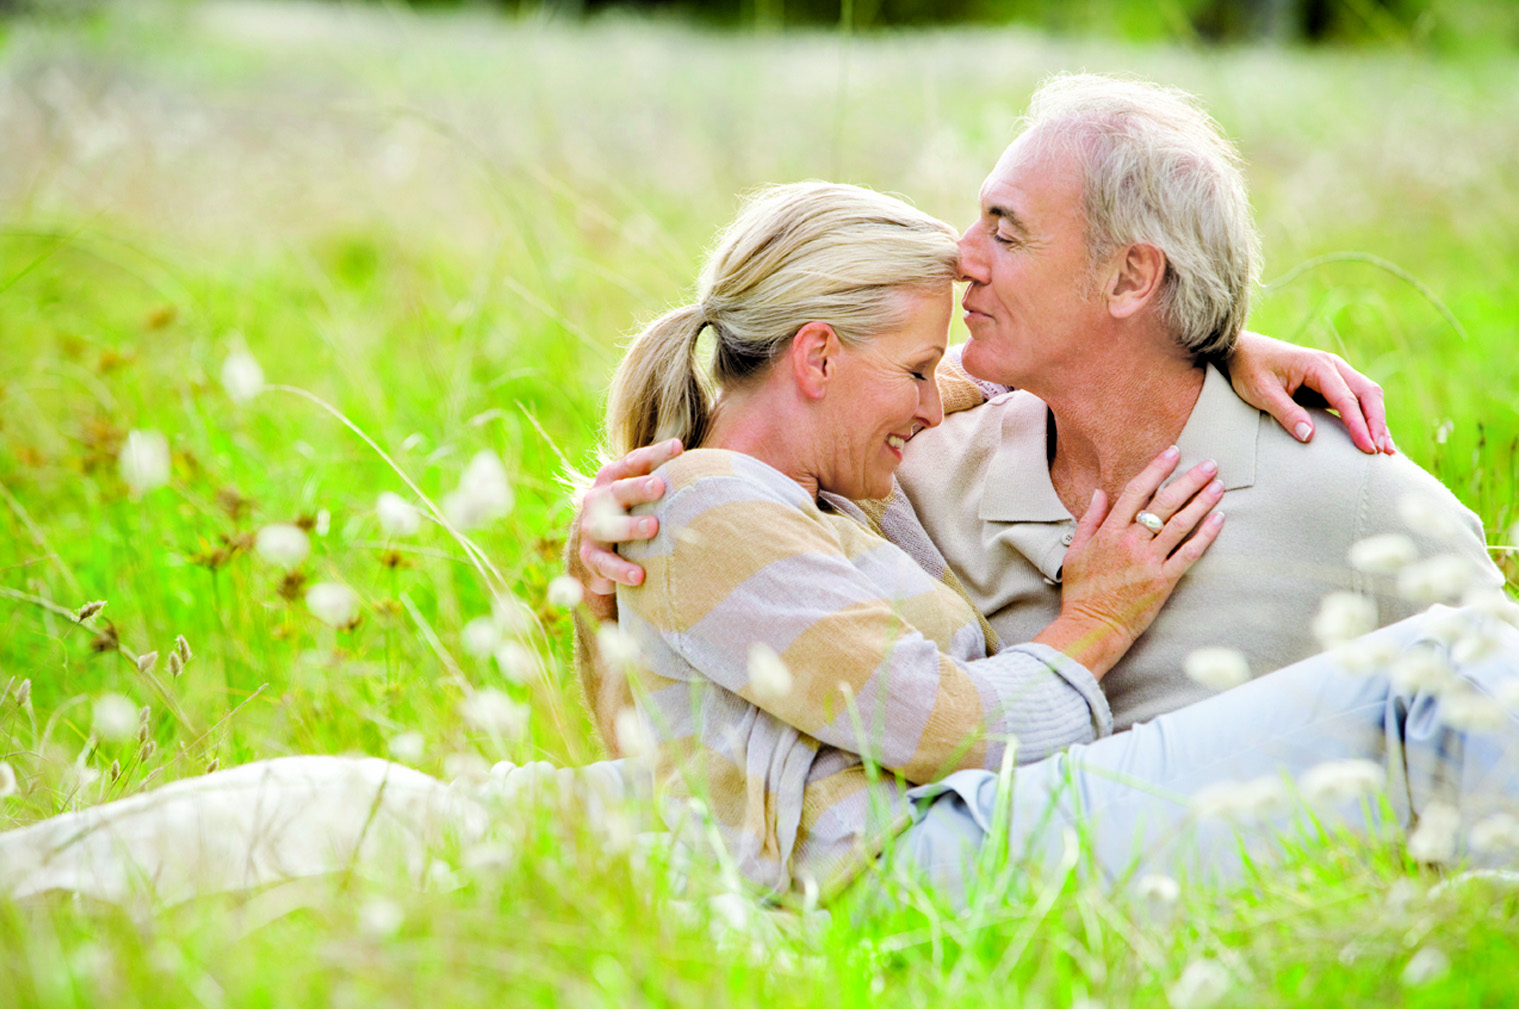 everson senior personals Dating for seniors is the #1 dating site for senior single men/women looking to find their soulmate 100% free senior dating site signup today.